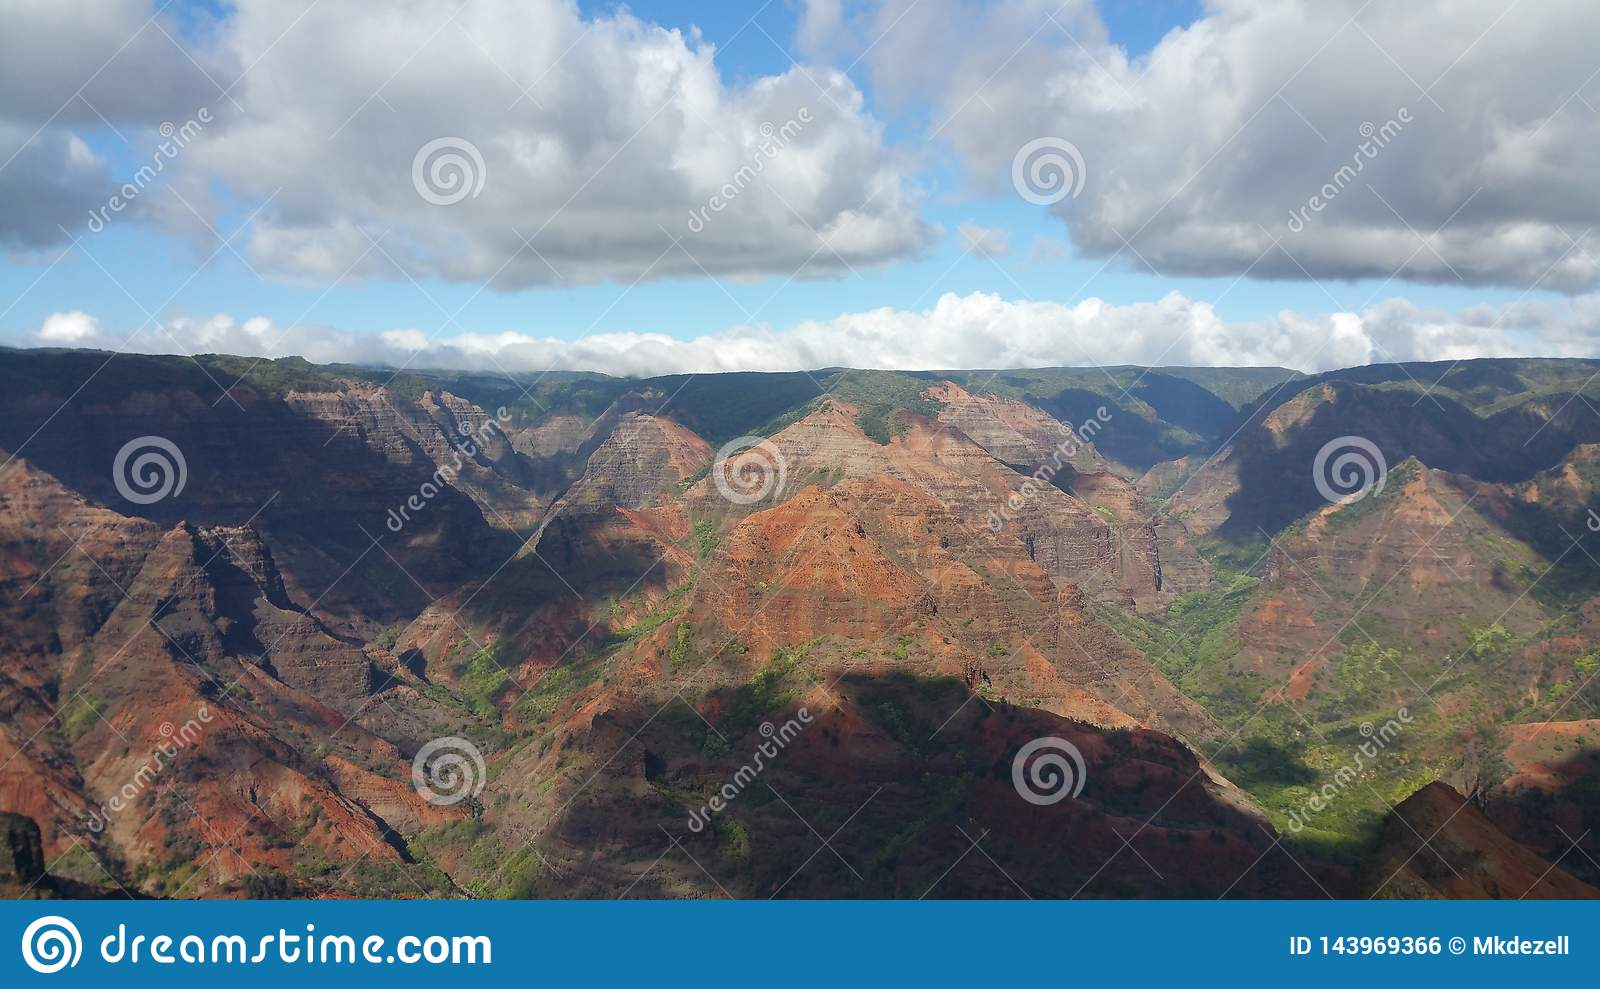 The othe grand canyon